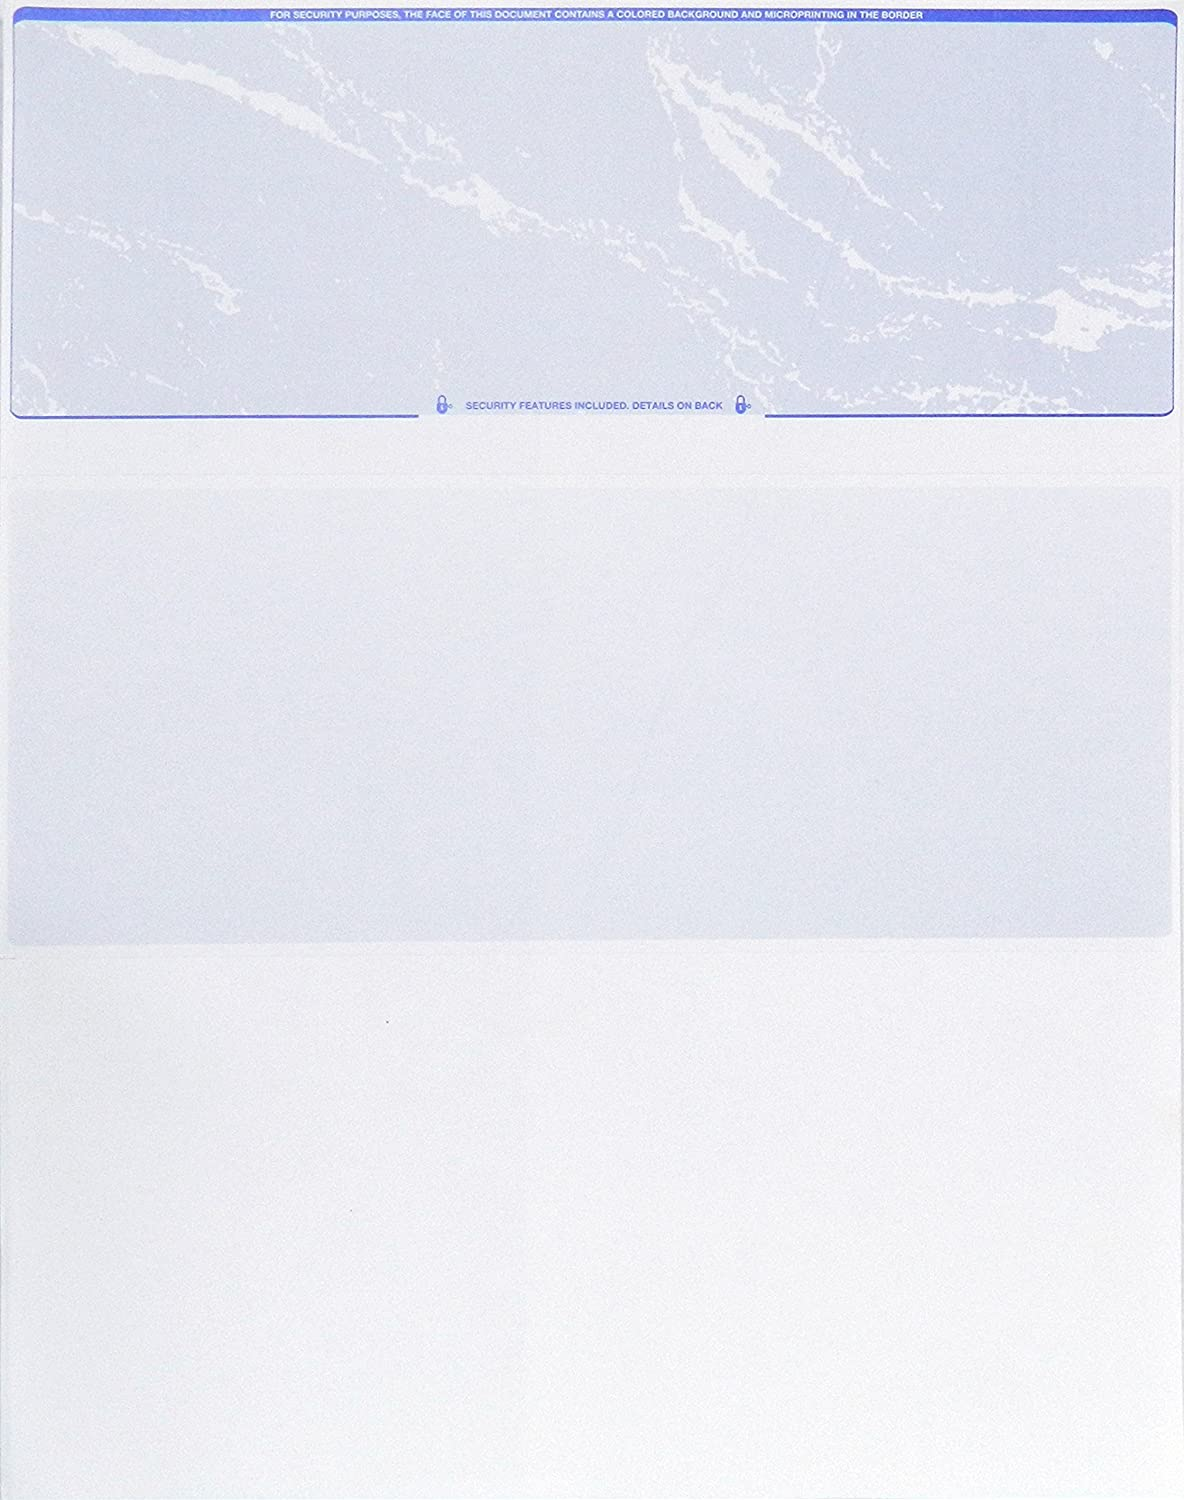 Blank Check Stock - Printable Checks for Business and Personal Use - Check on Top - Sky Blue - 500 Count Premium Check Paper